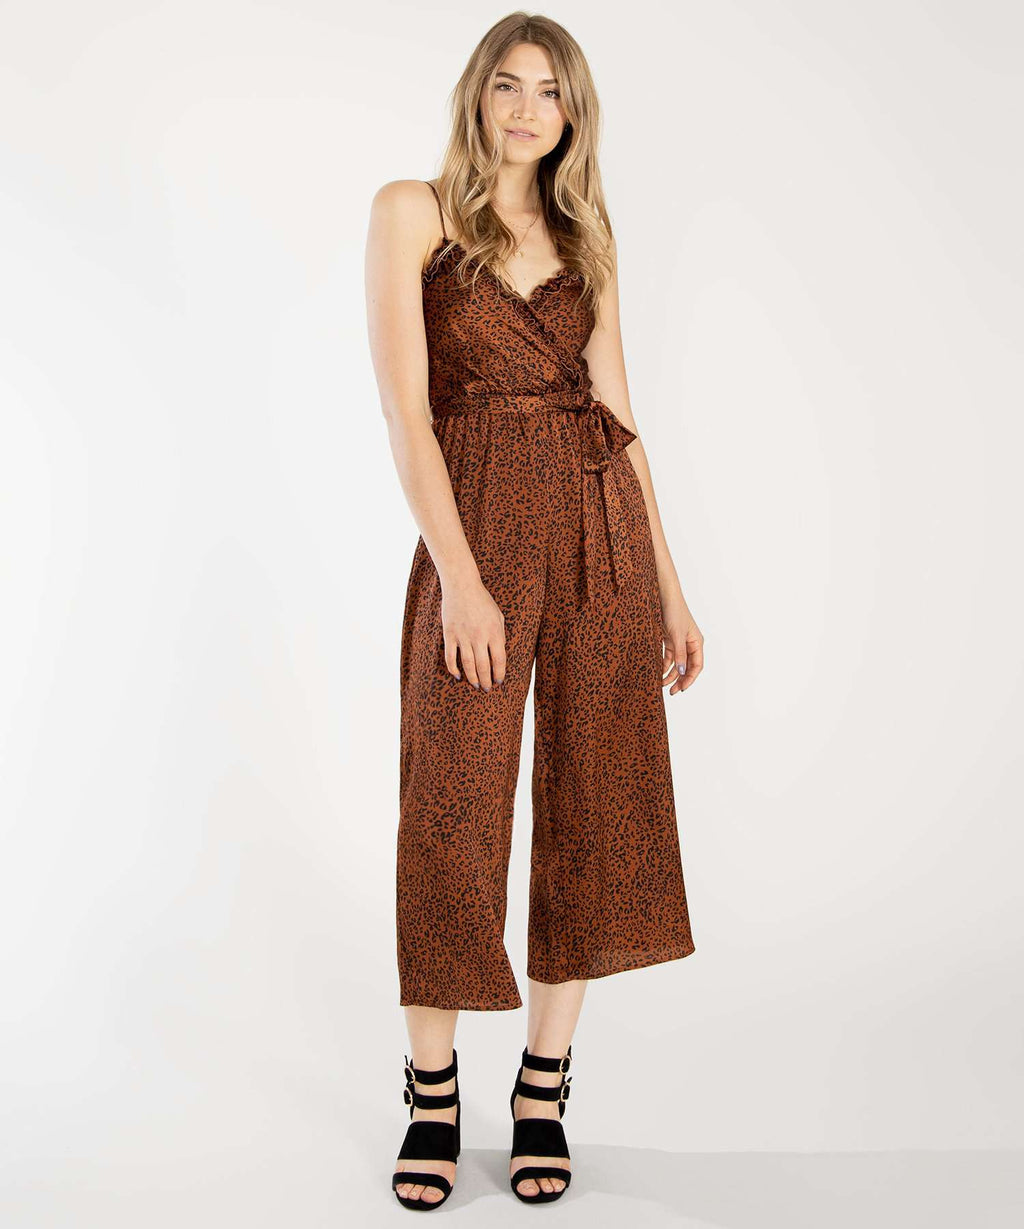 Wildest Dreams Jumpsuit